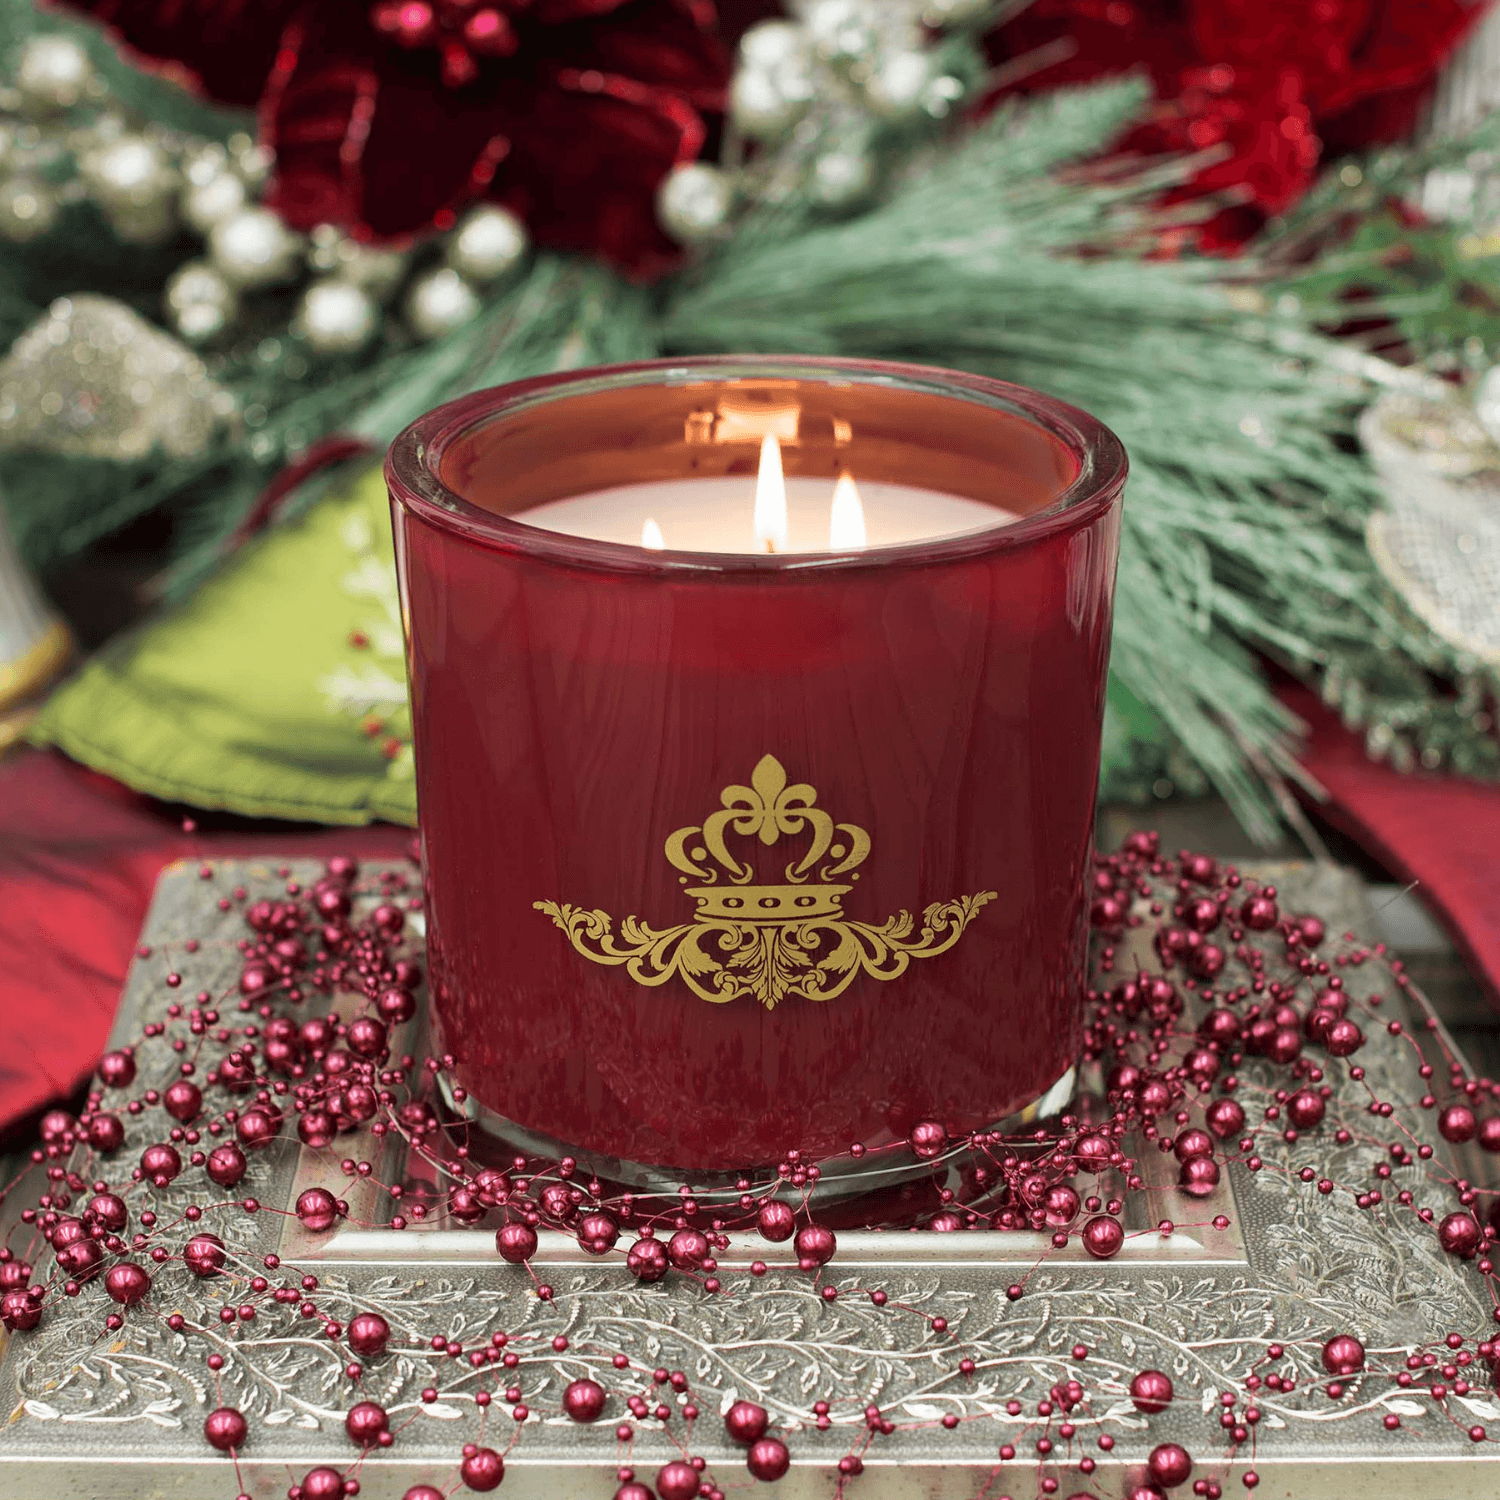 Bourbon Street Blues Luxury 32oz Burgundy Glass Candle Luxury Candles Candlemart.com $ 19.99